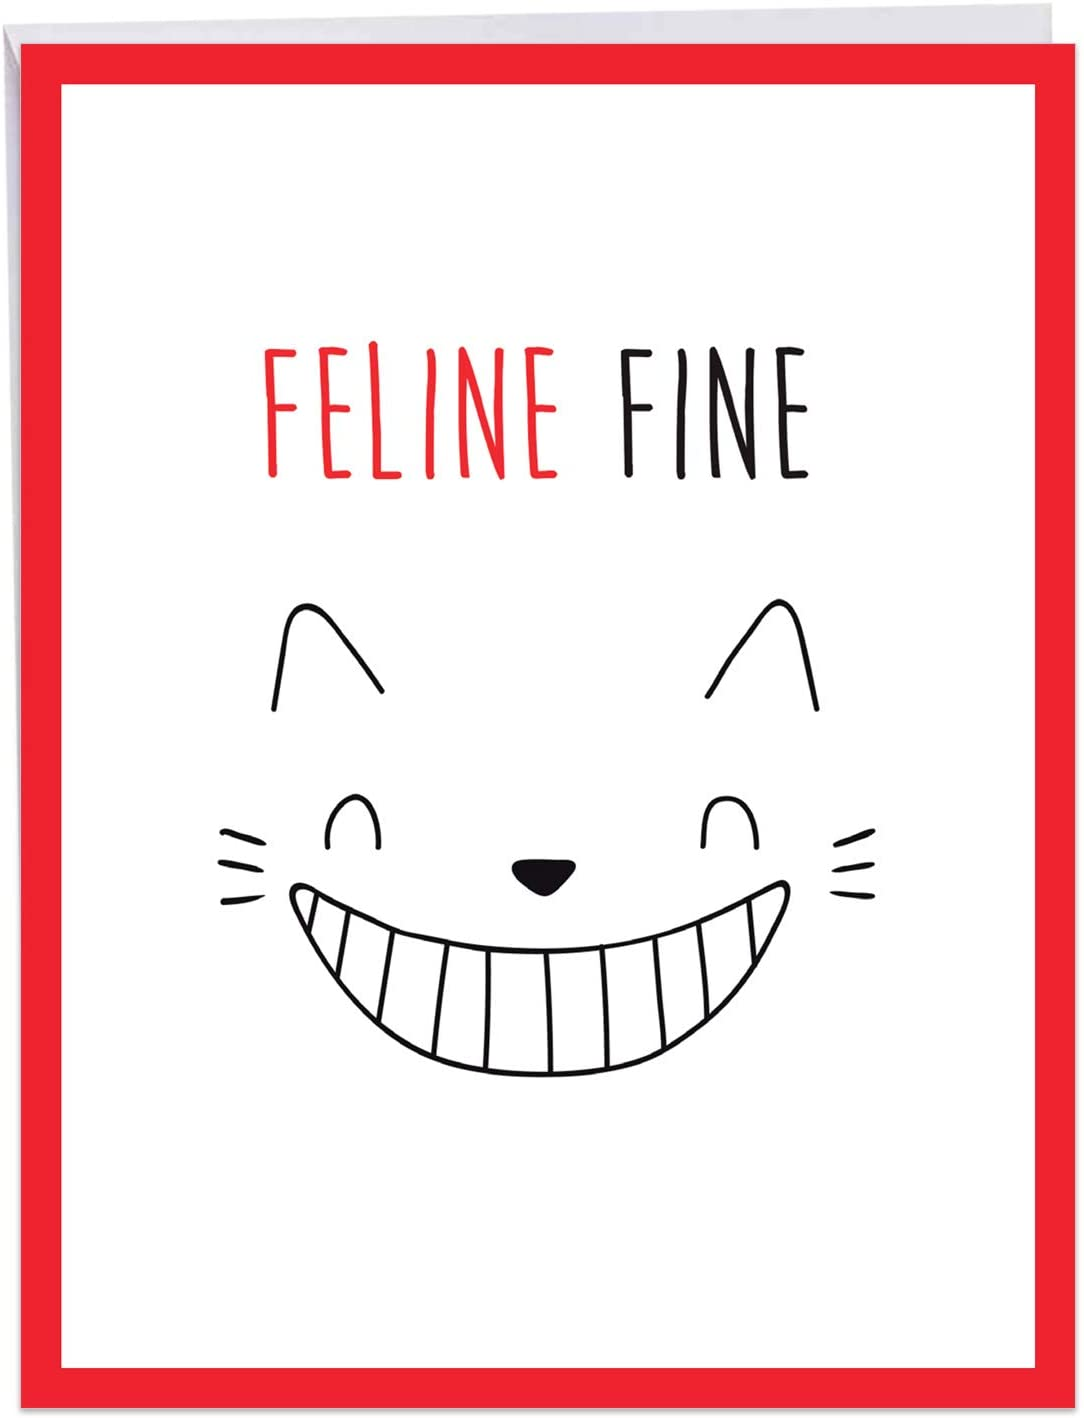 The Best Card Company, Cat Got Your Tongue - Jumbo Get Well Soon Card (8.5 x 11 Inch) - Feel Better Group Card J7183DGWG